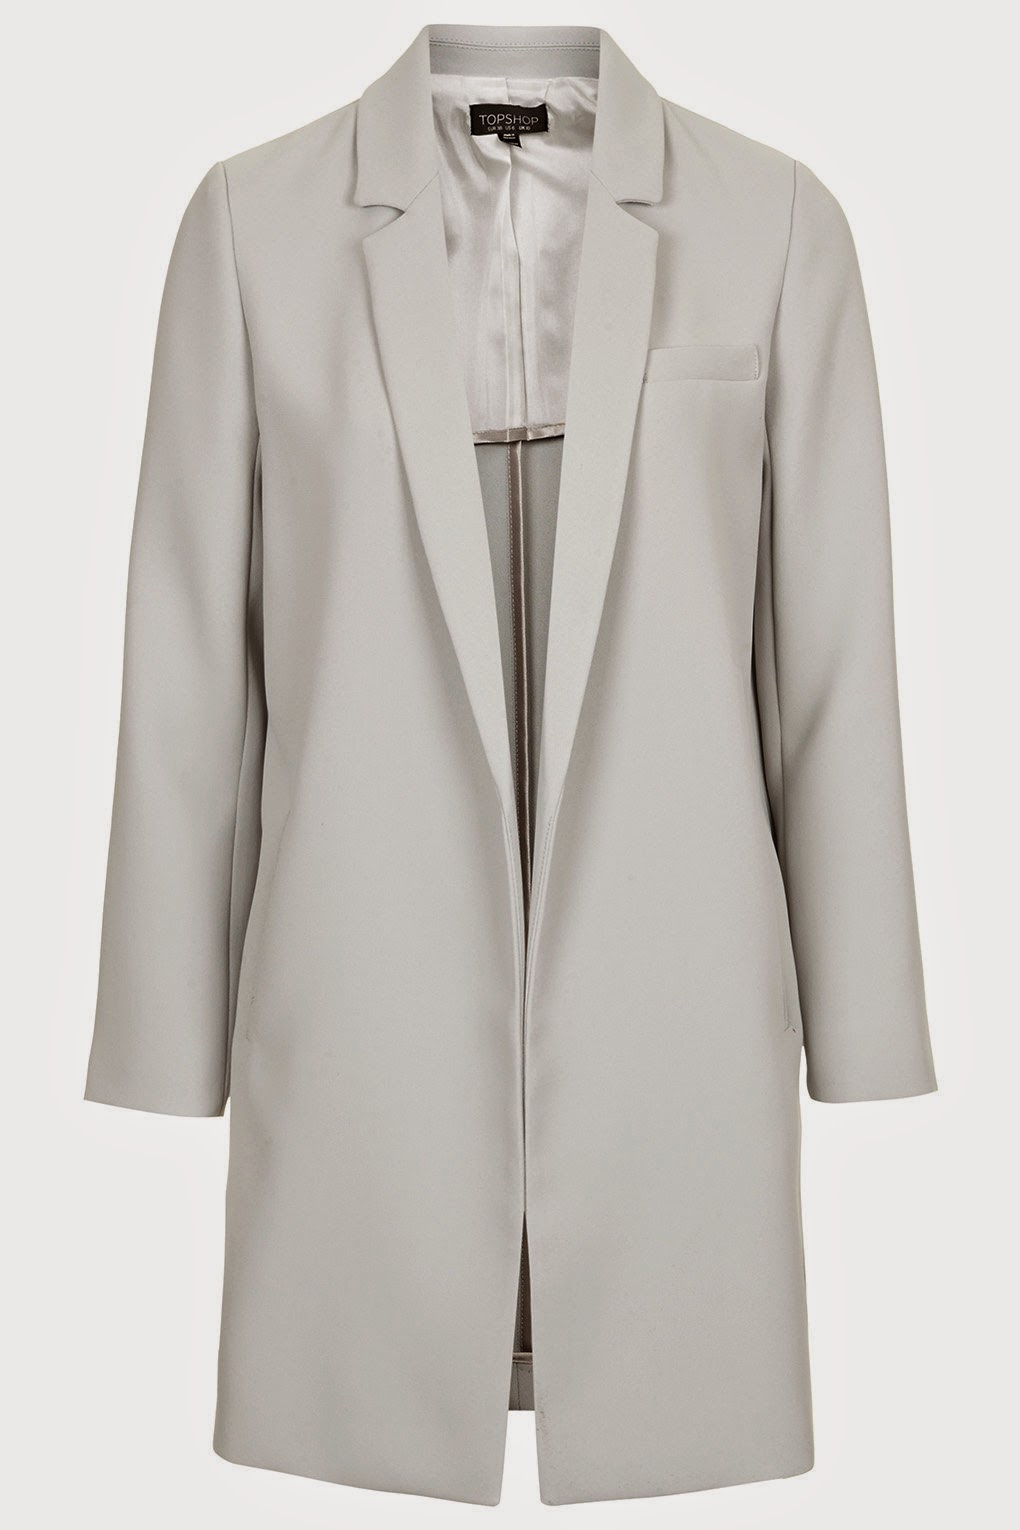 topshop grey long blazer,